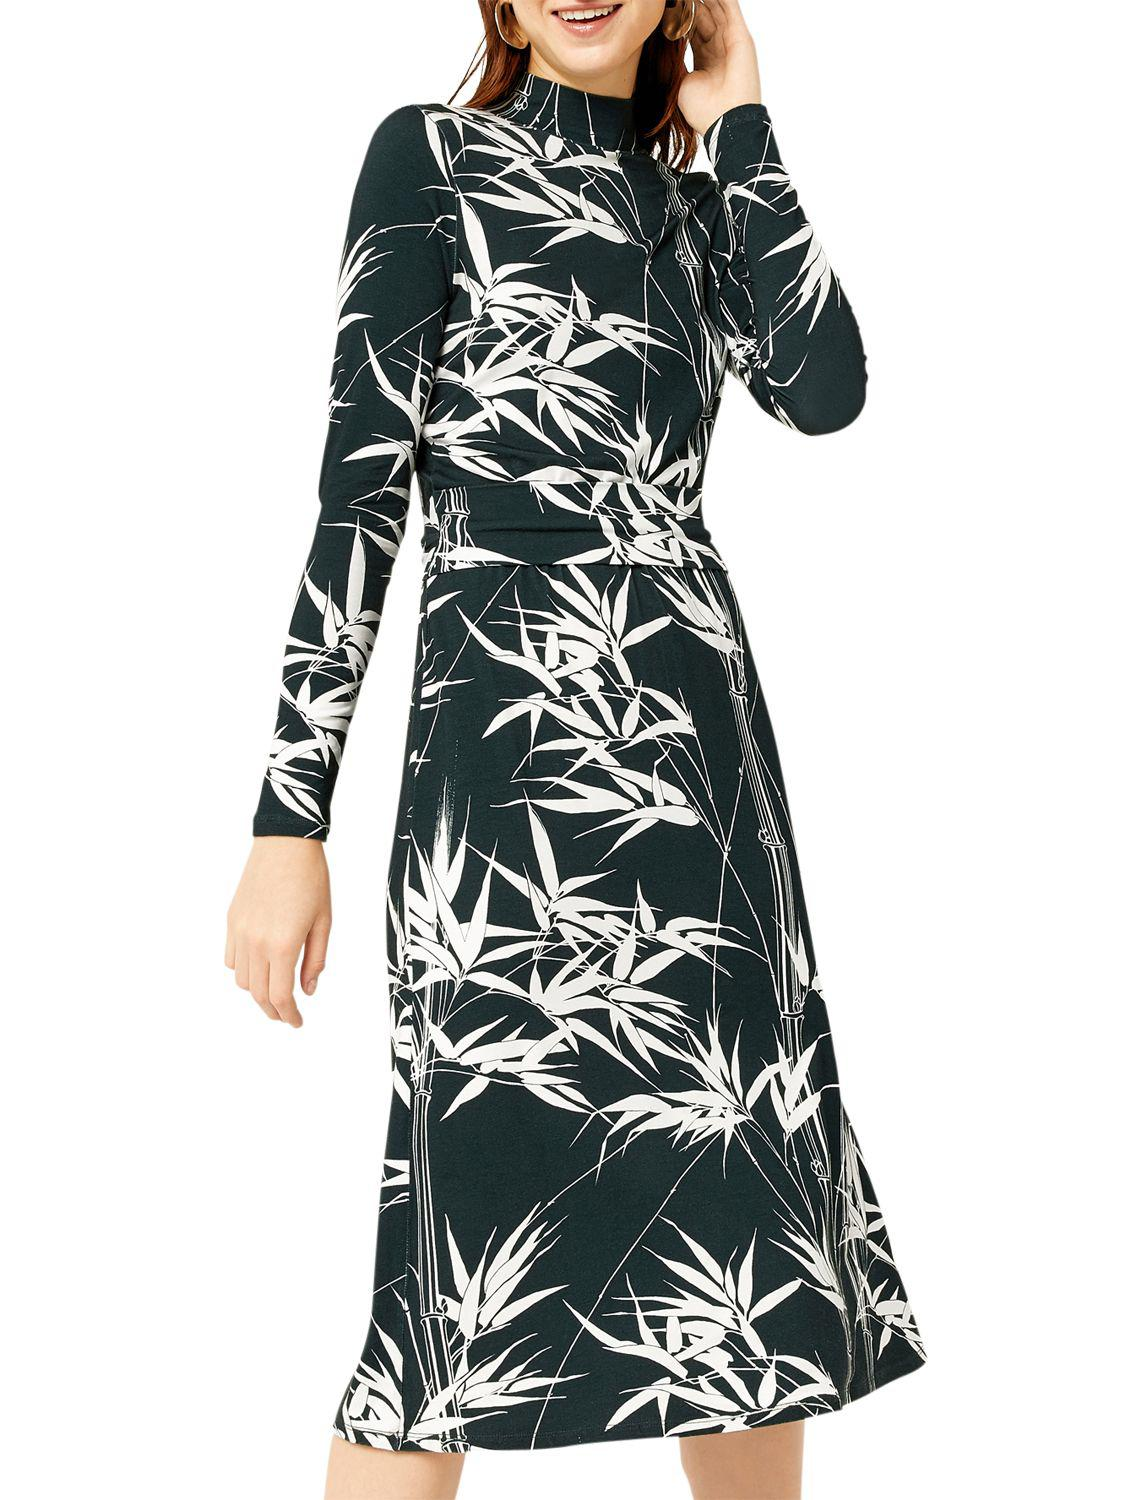 Sneakernews Sale Online Barbican Collection Climbing Bamboo Midi Dress - Green Warehouse Clearance Choice Quality Free Shipping Outlet FNdgiI